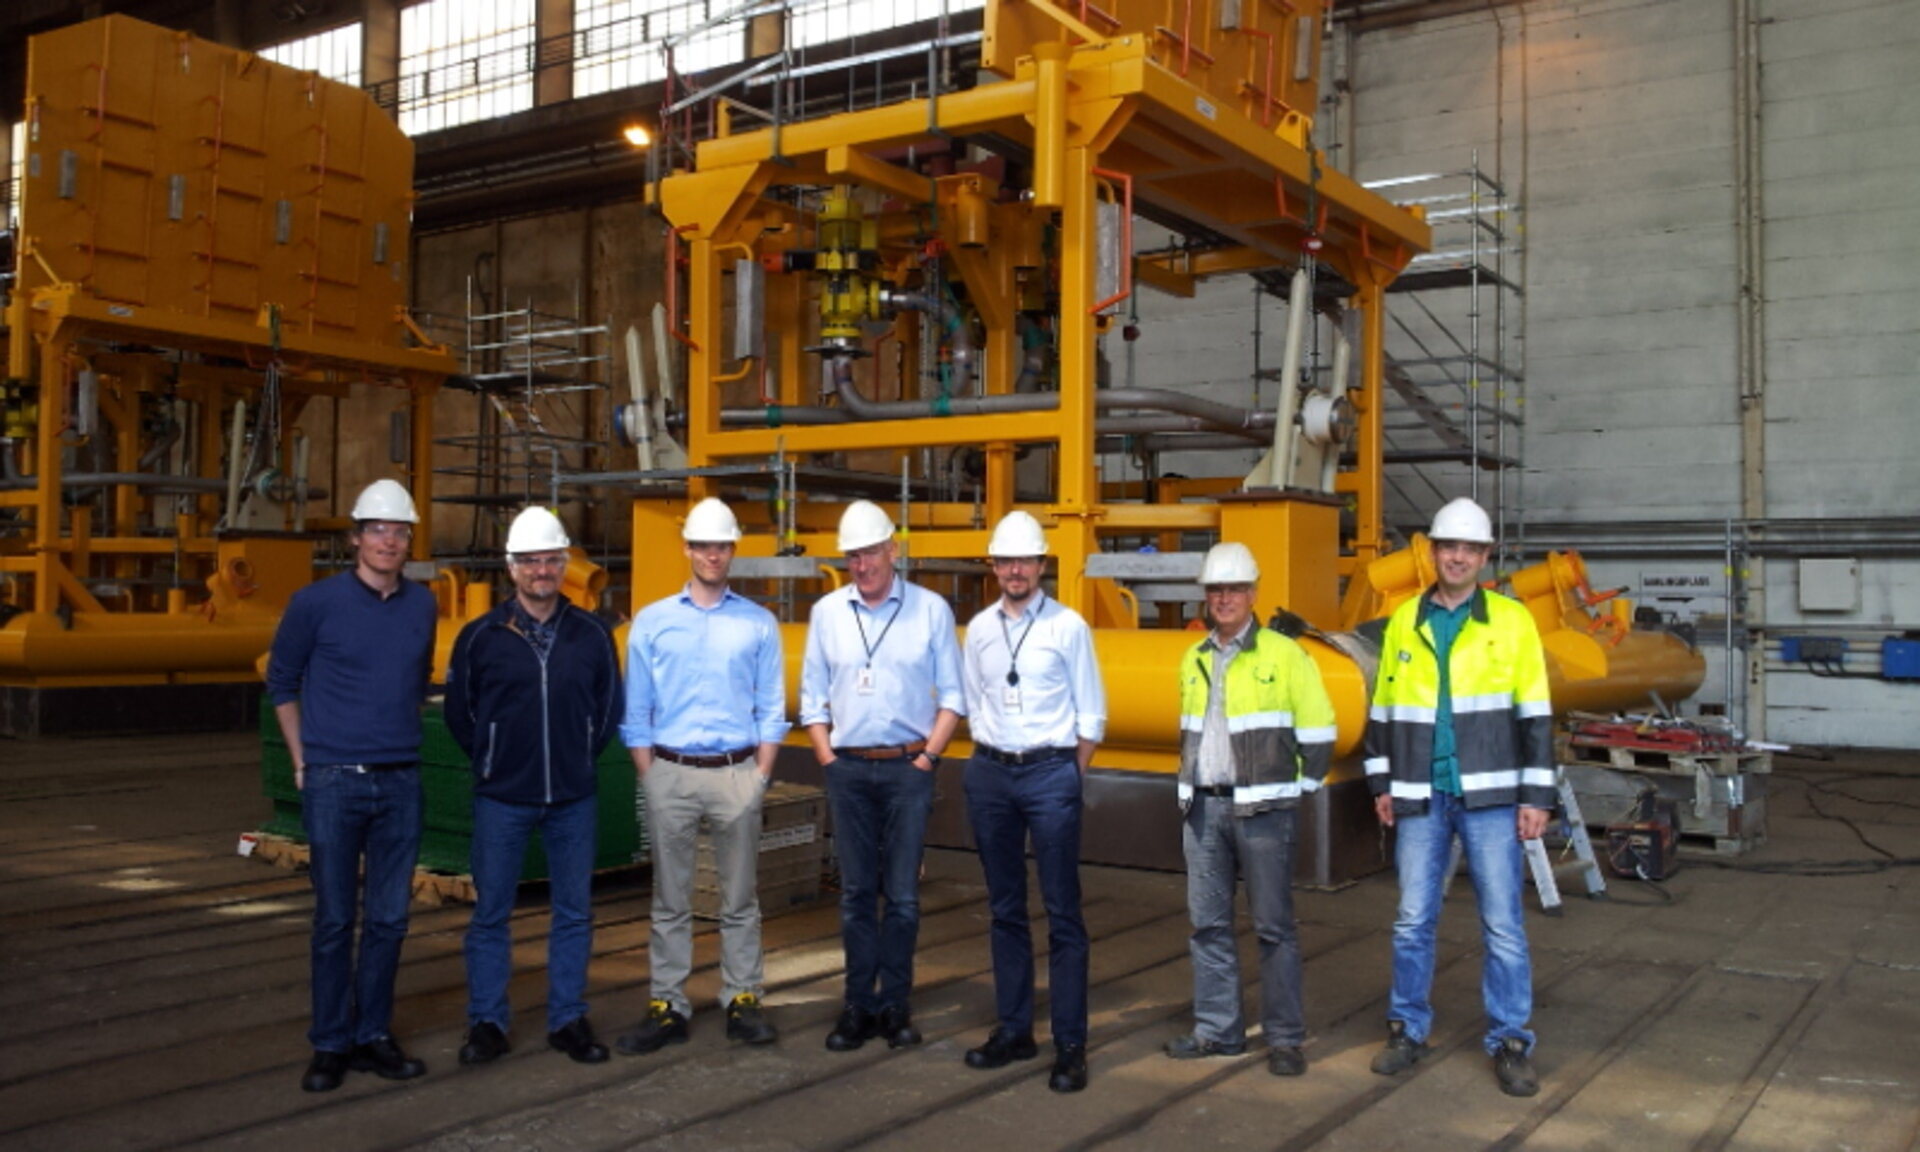 Jotne team with sub-sea oil rig structure